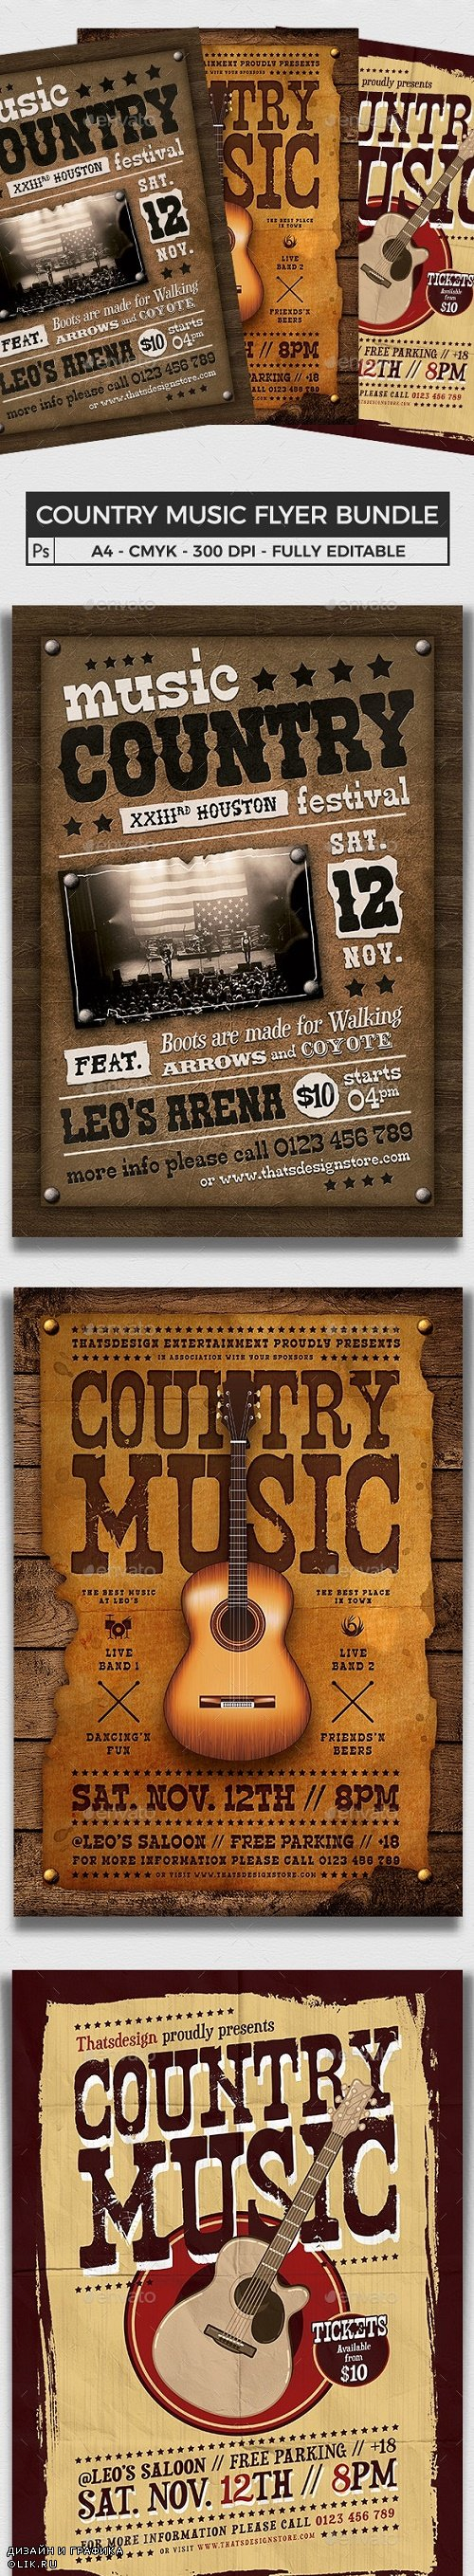 Country Music Flyer Bundle V2 - 24736683 - 4155617